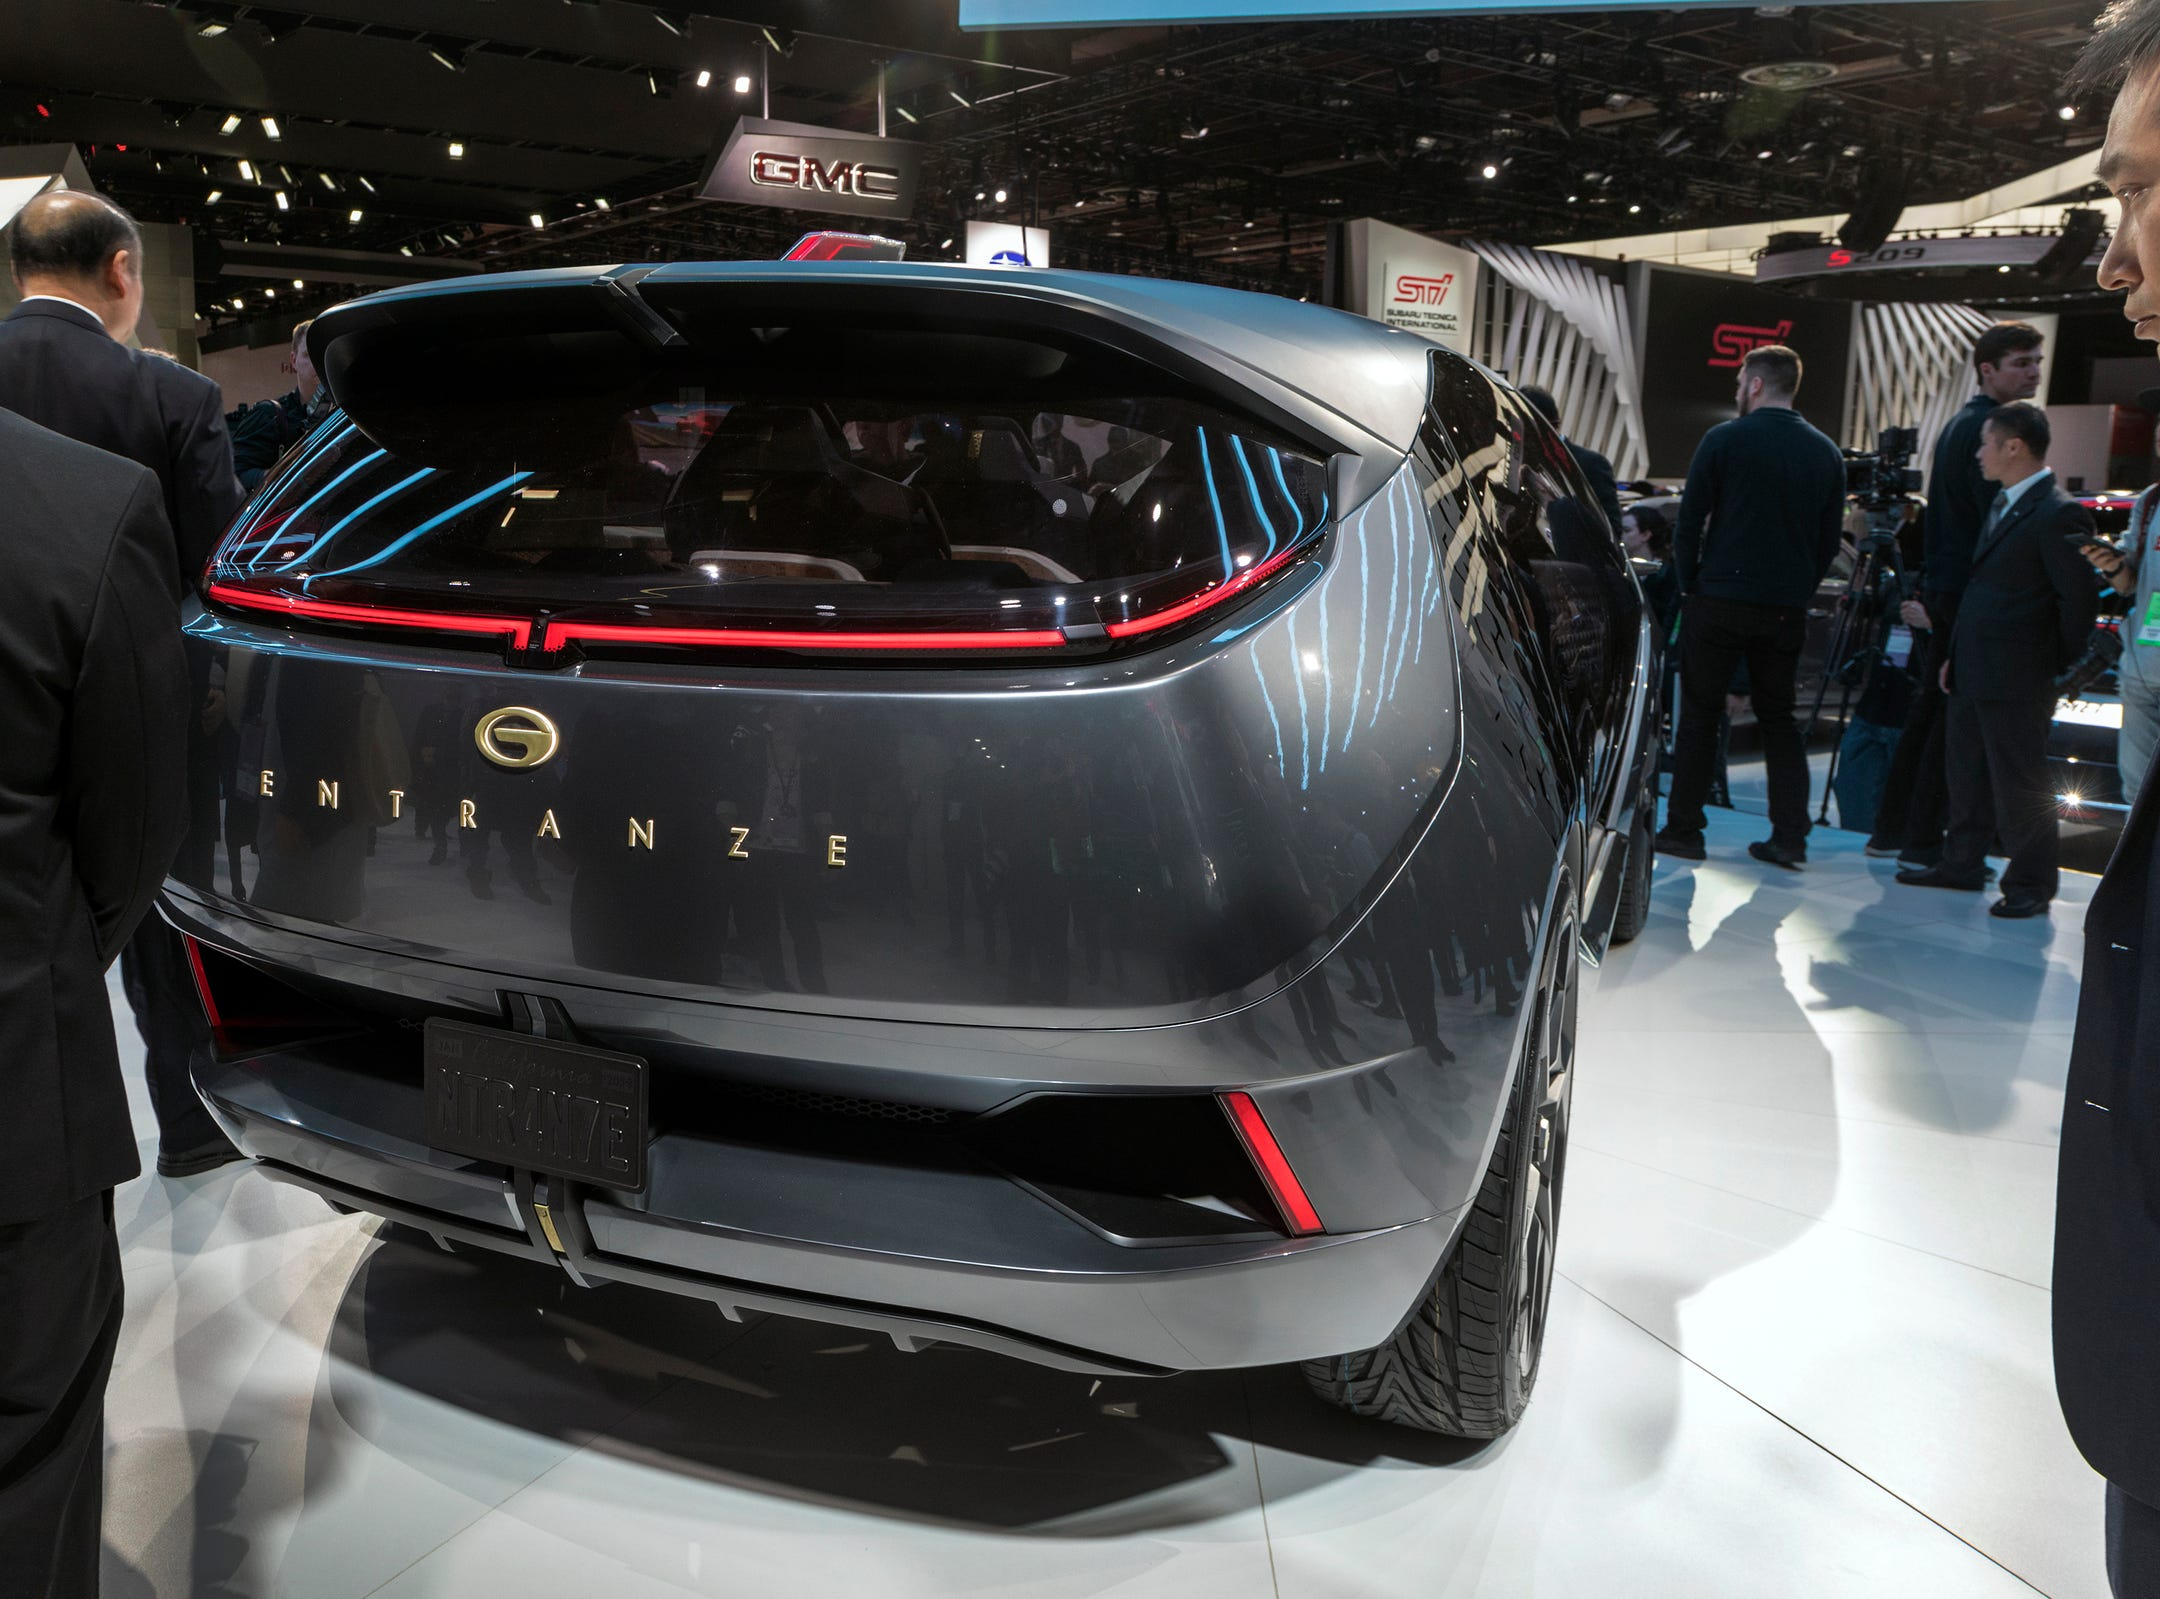 GAC Motor unveils the Entranze concept at the 2019 North American International Auto Show held at Cobo Center in downtown Detroit on Monday, Jan. 14, 2019.